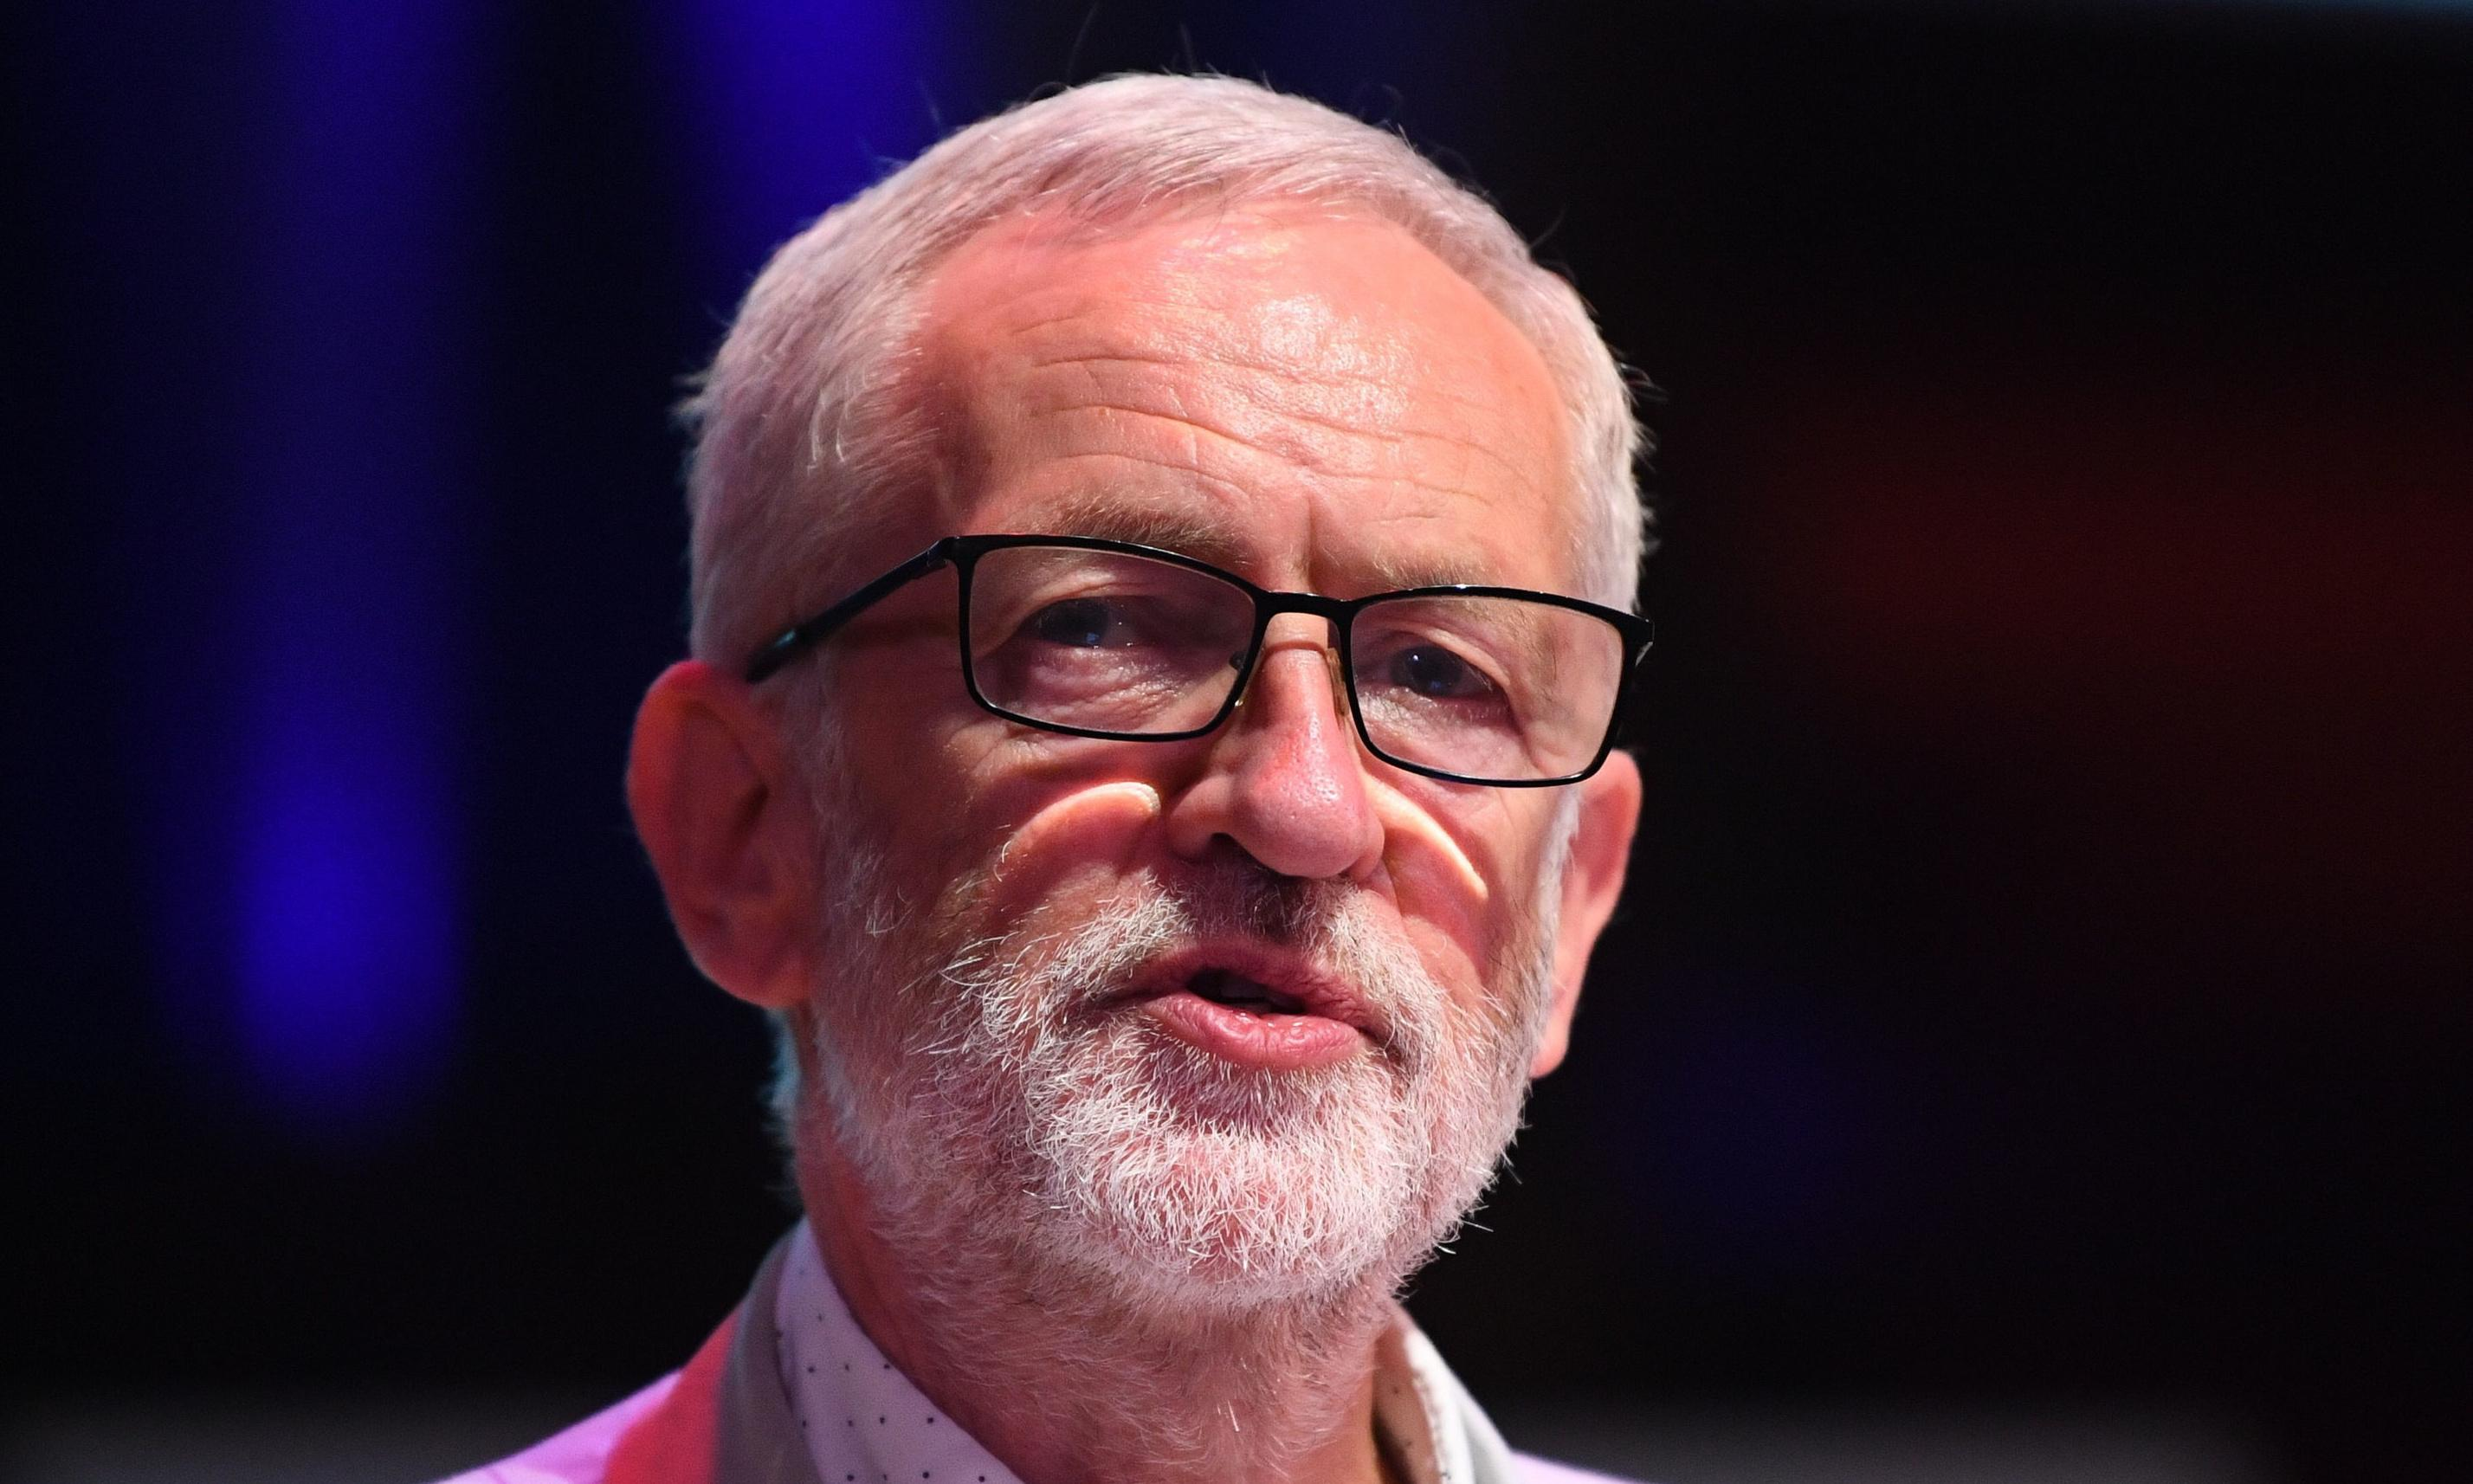 Jeremy Corbyn apologises for 'hurt' to Jewish people